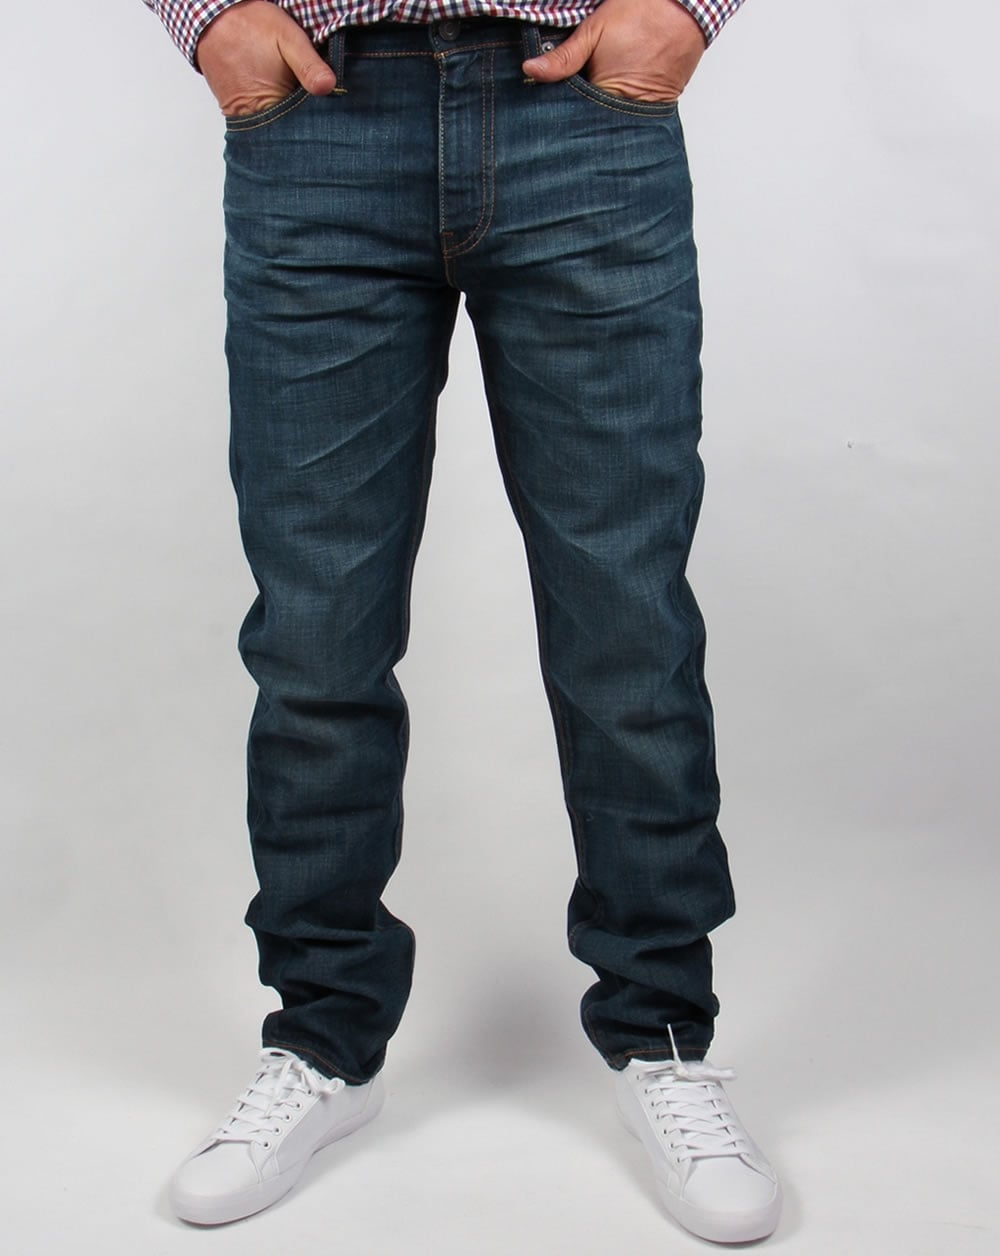 Mens Jeans G Star